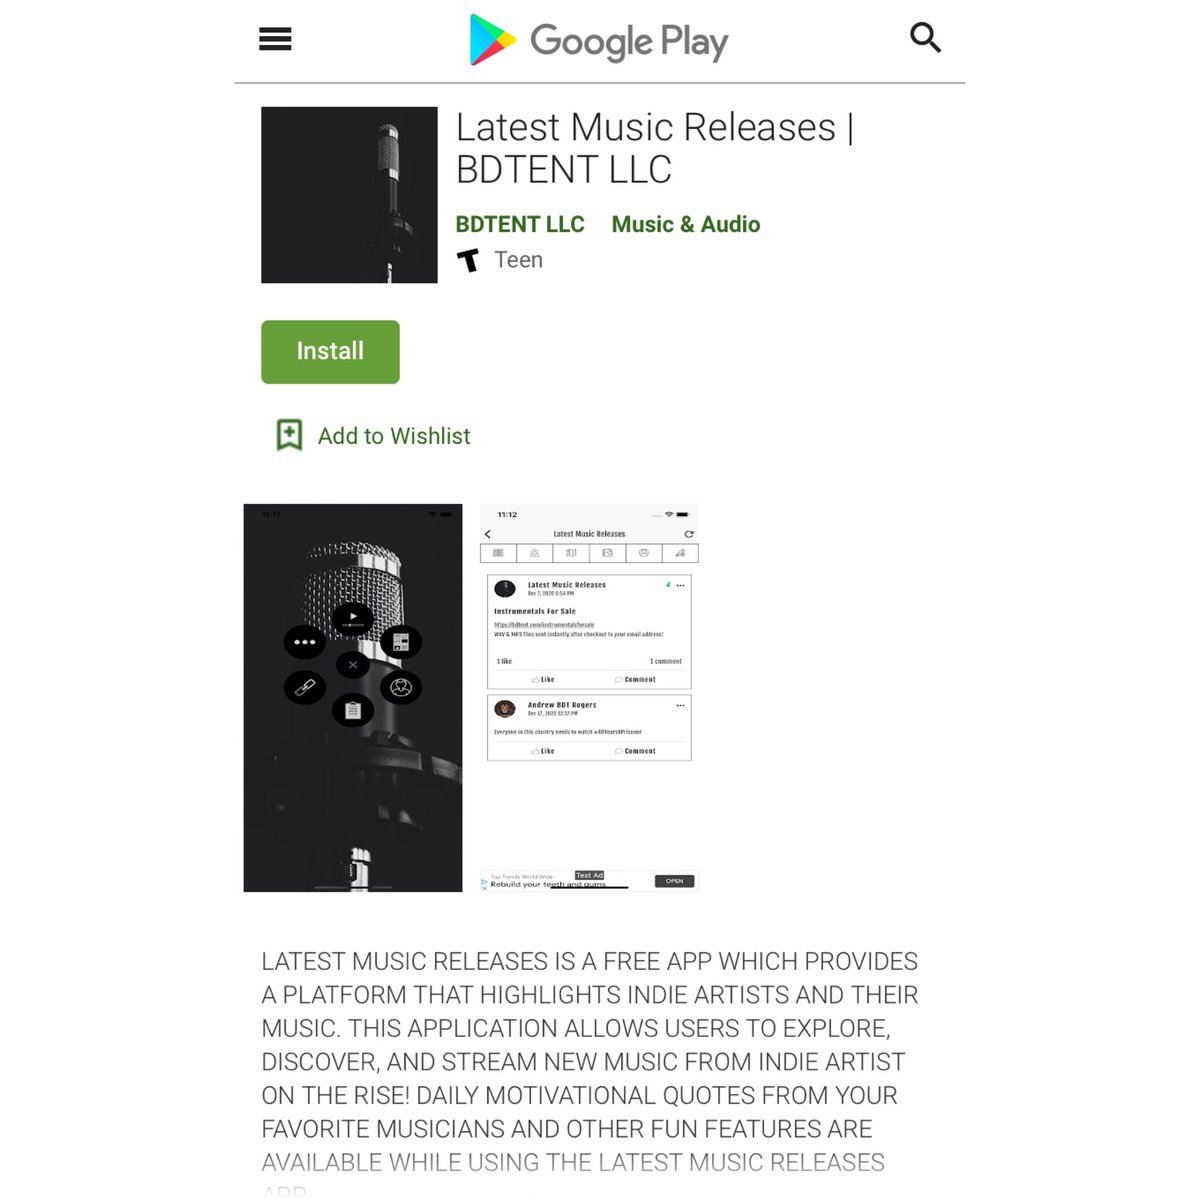 Available on Google Play now! 📱🔥📈 #newapp #indie #music #app #googleplay #newmusic #latestmusicreleases #FridayVibes